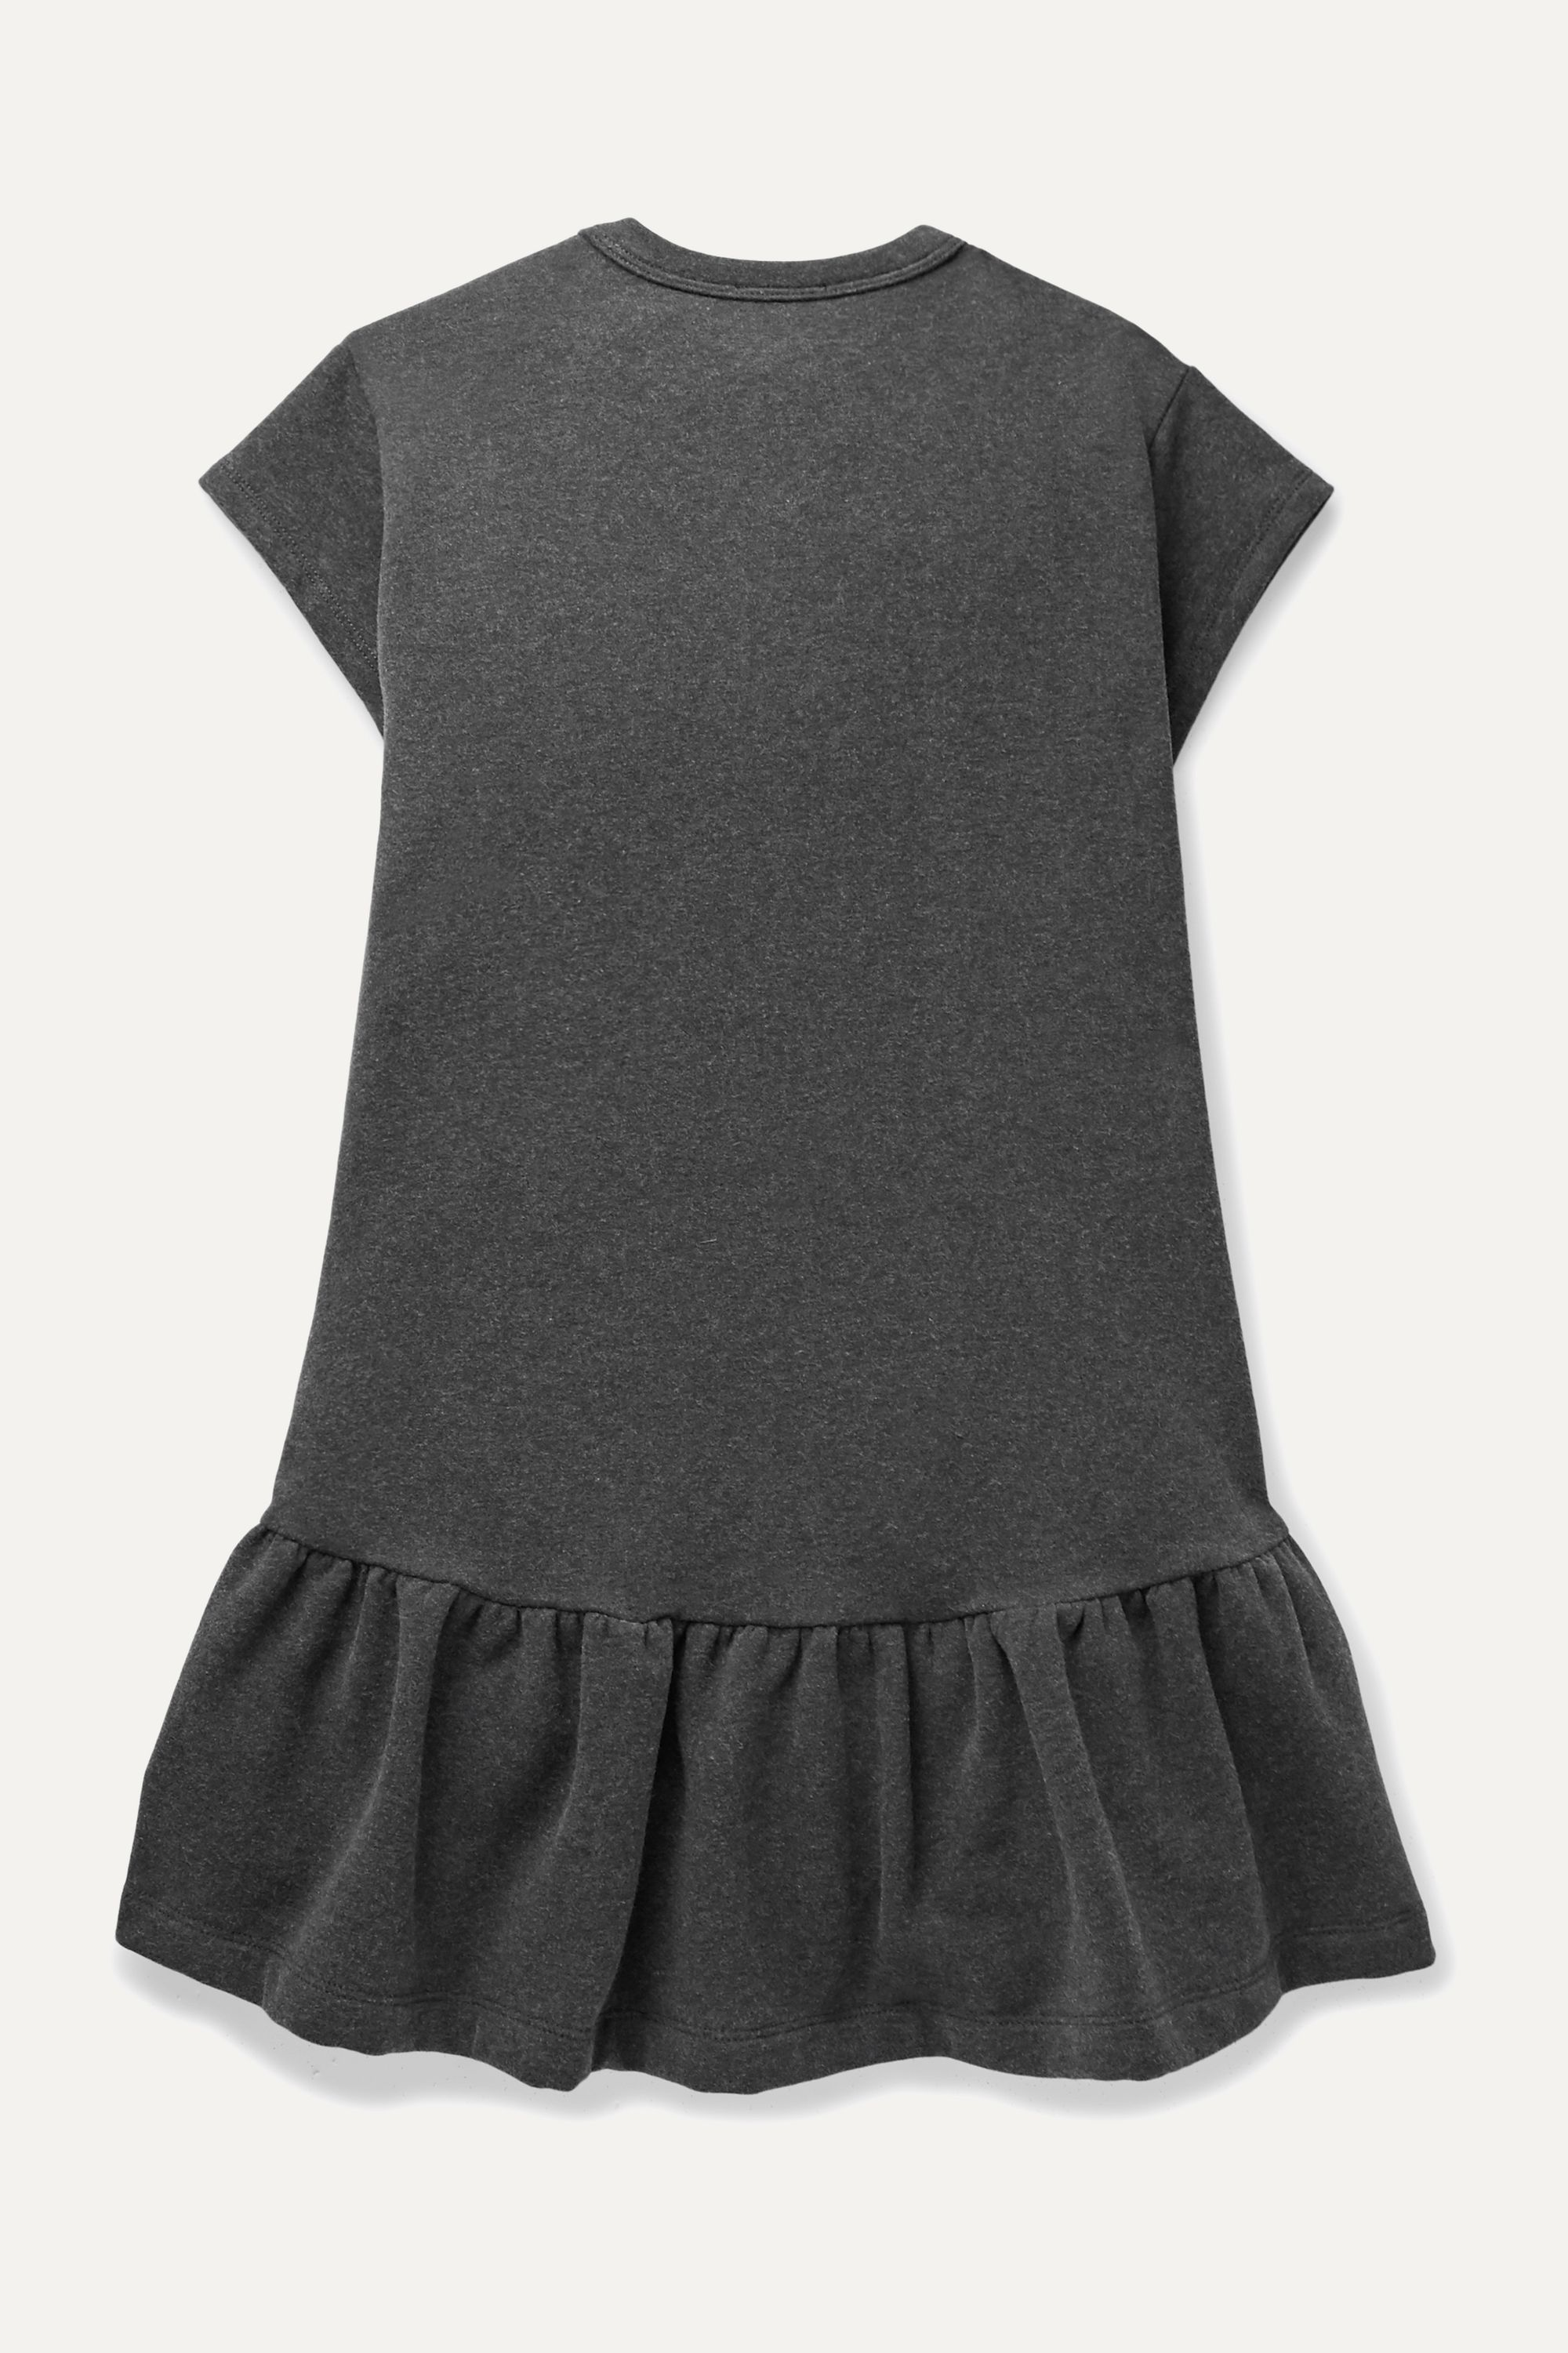 Brunello Cucinelli Kids Ages 4 - 6 embellished stretch-cotton jersey dress